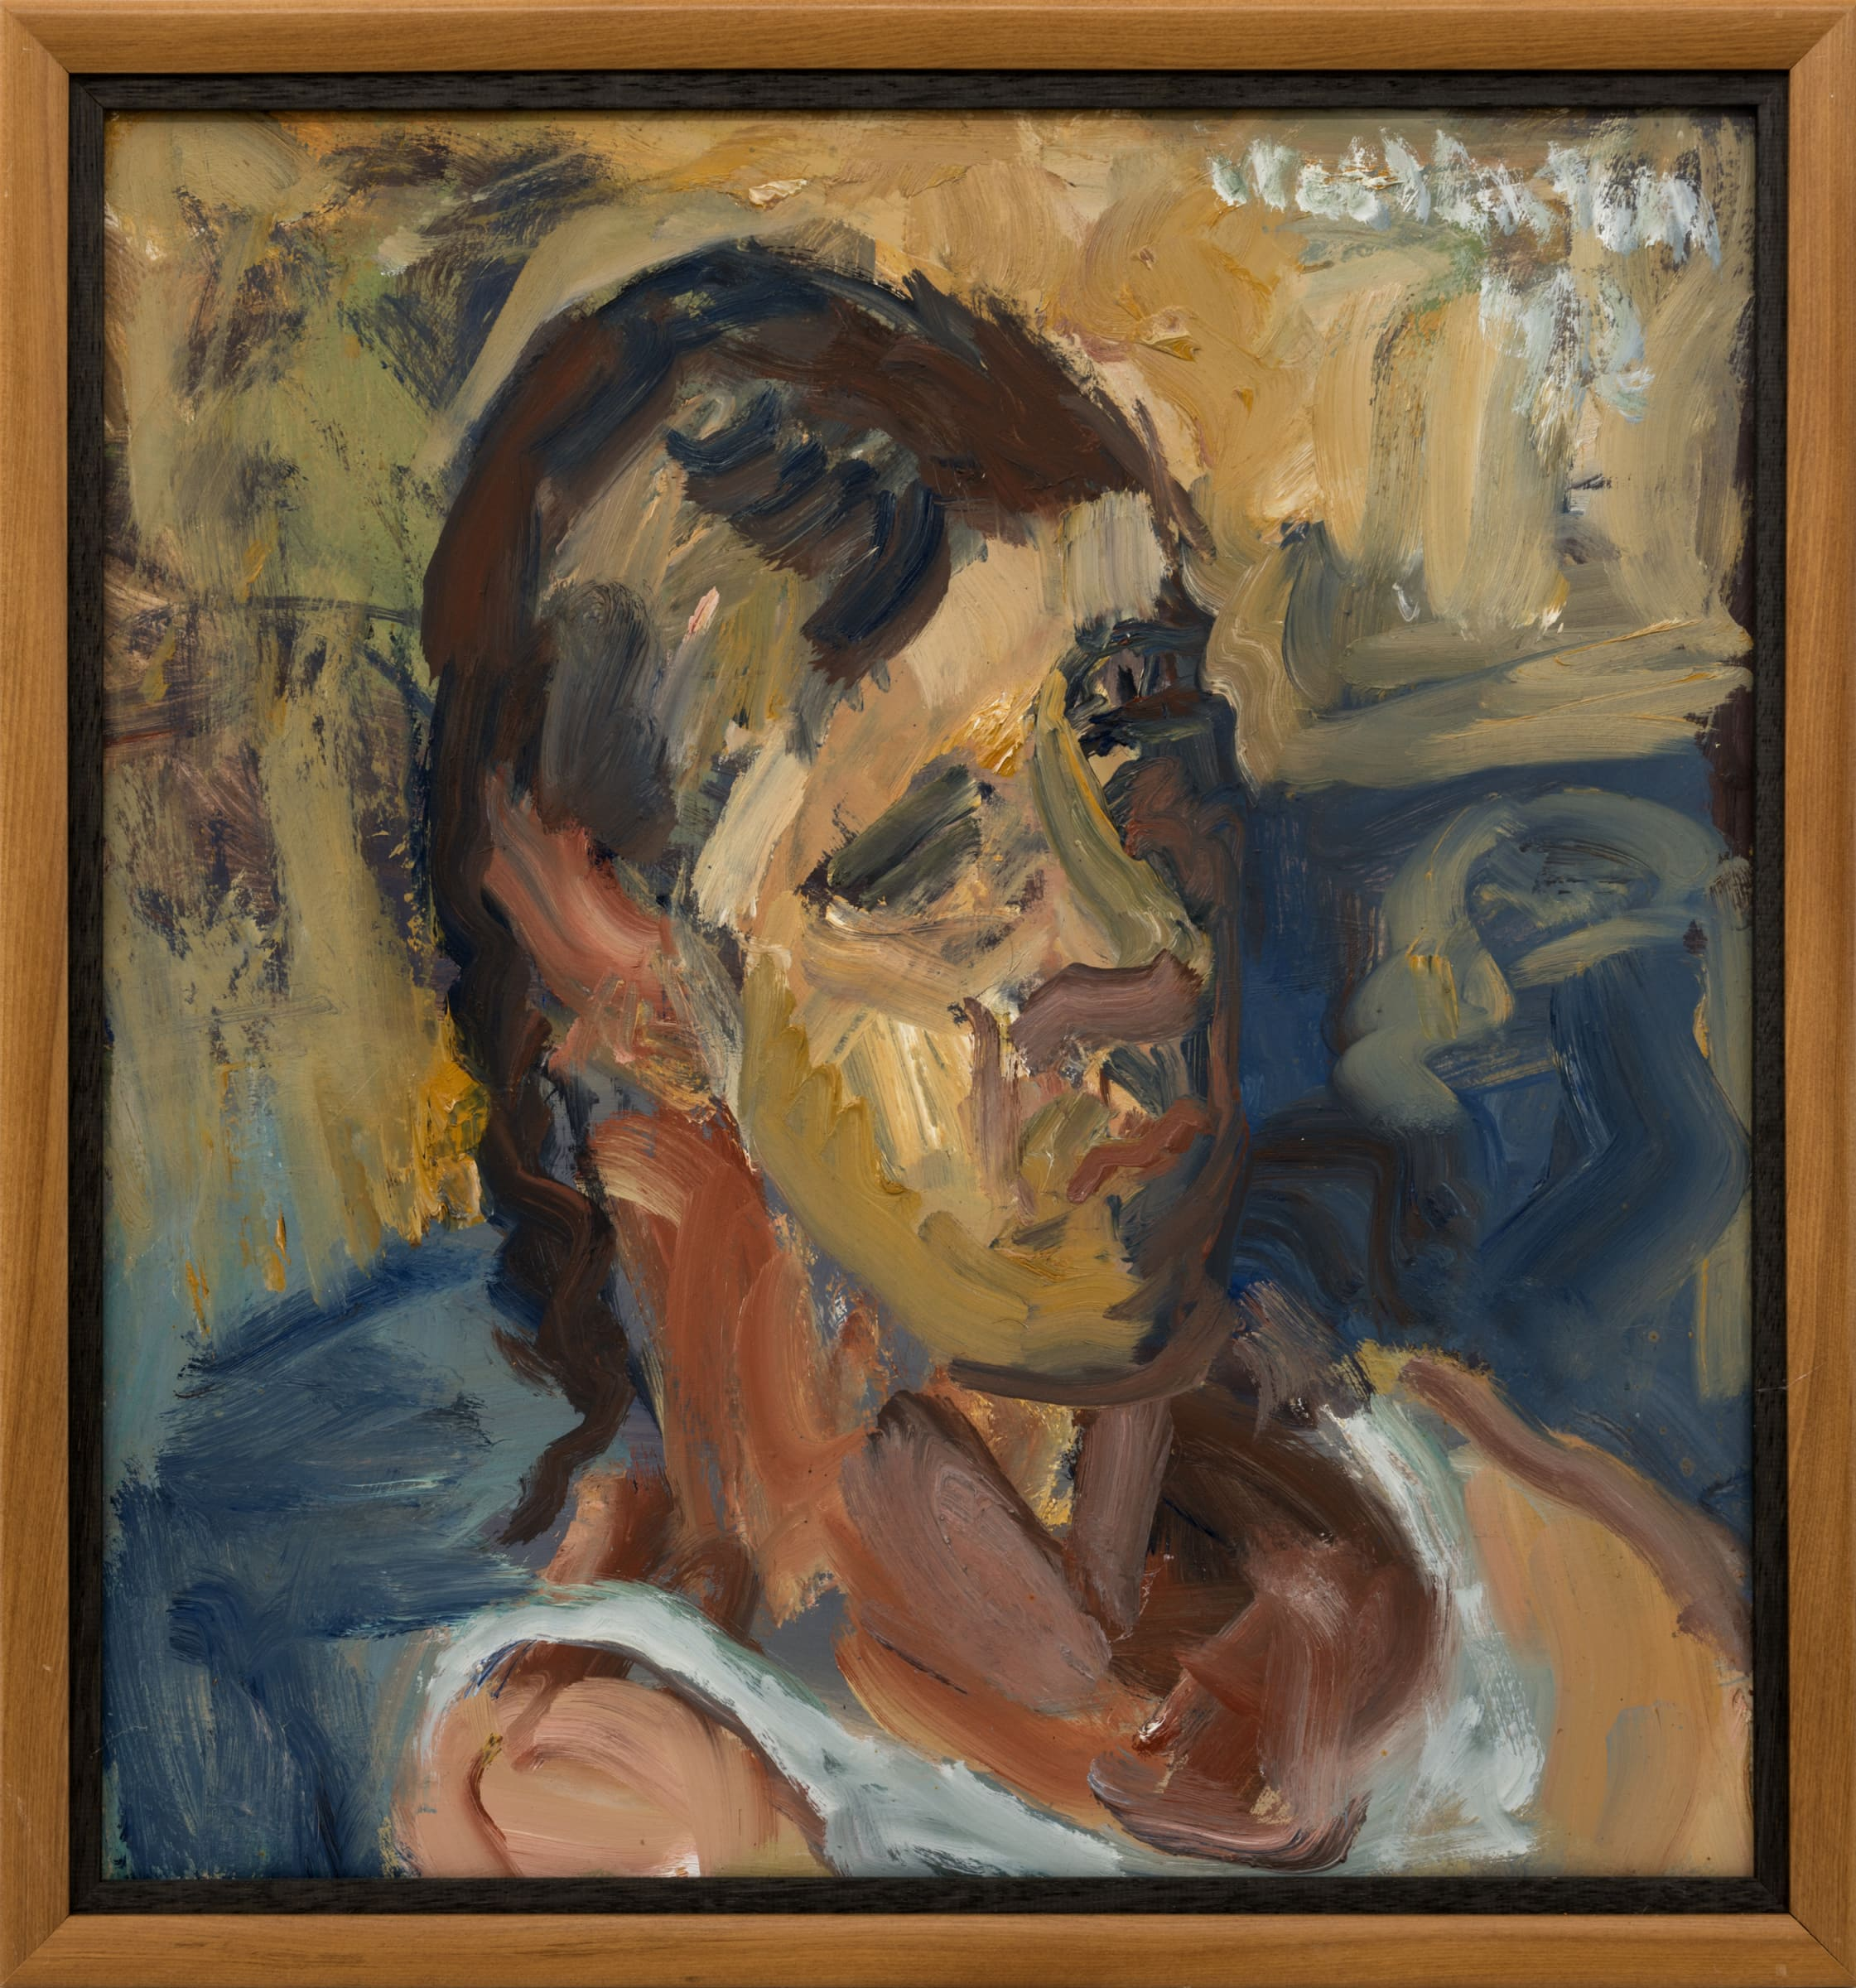 "<span class=""link fancybox-details-link""><a href=""/artists/62-mountford-tosswill-woollaston/works/6902-mountford-tosswill-woollaston-untitled-portrait-of-stephen-lockett-1992/"">View Detail Page</a></span><div class=""artist""><strong>Mountford Tosswill Woollaston</strong></div> <div class=""title""><em>Untitled [Portrait of Stephen Lockett]</em>, 1992</div> <div class=""signed_and_dated"">Sighed & dated upper right</div> <div class=""medium"">Oil on board</div> <div class=""dimensions"">570mm x 535mm</div>"